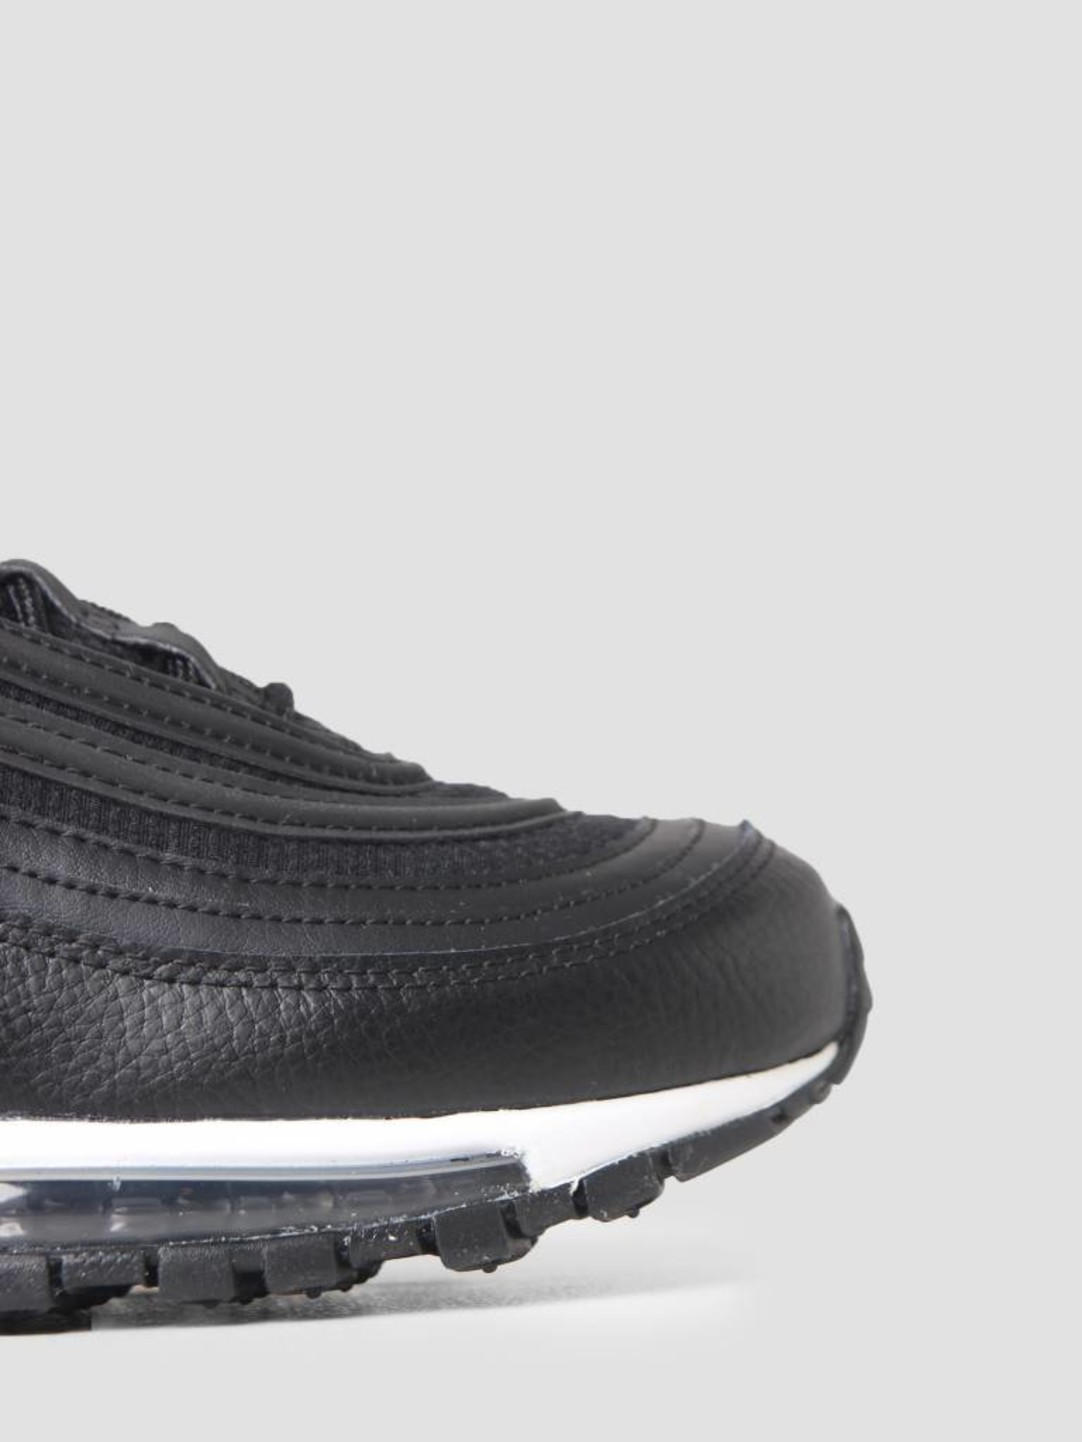 Nike Nike Air Max 97 Lux Black Black White Ar7621-001